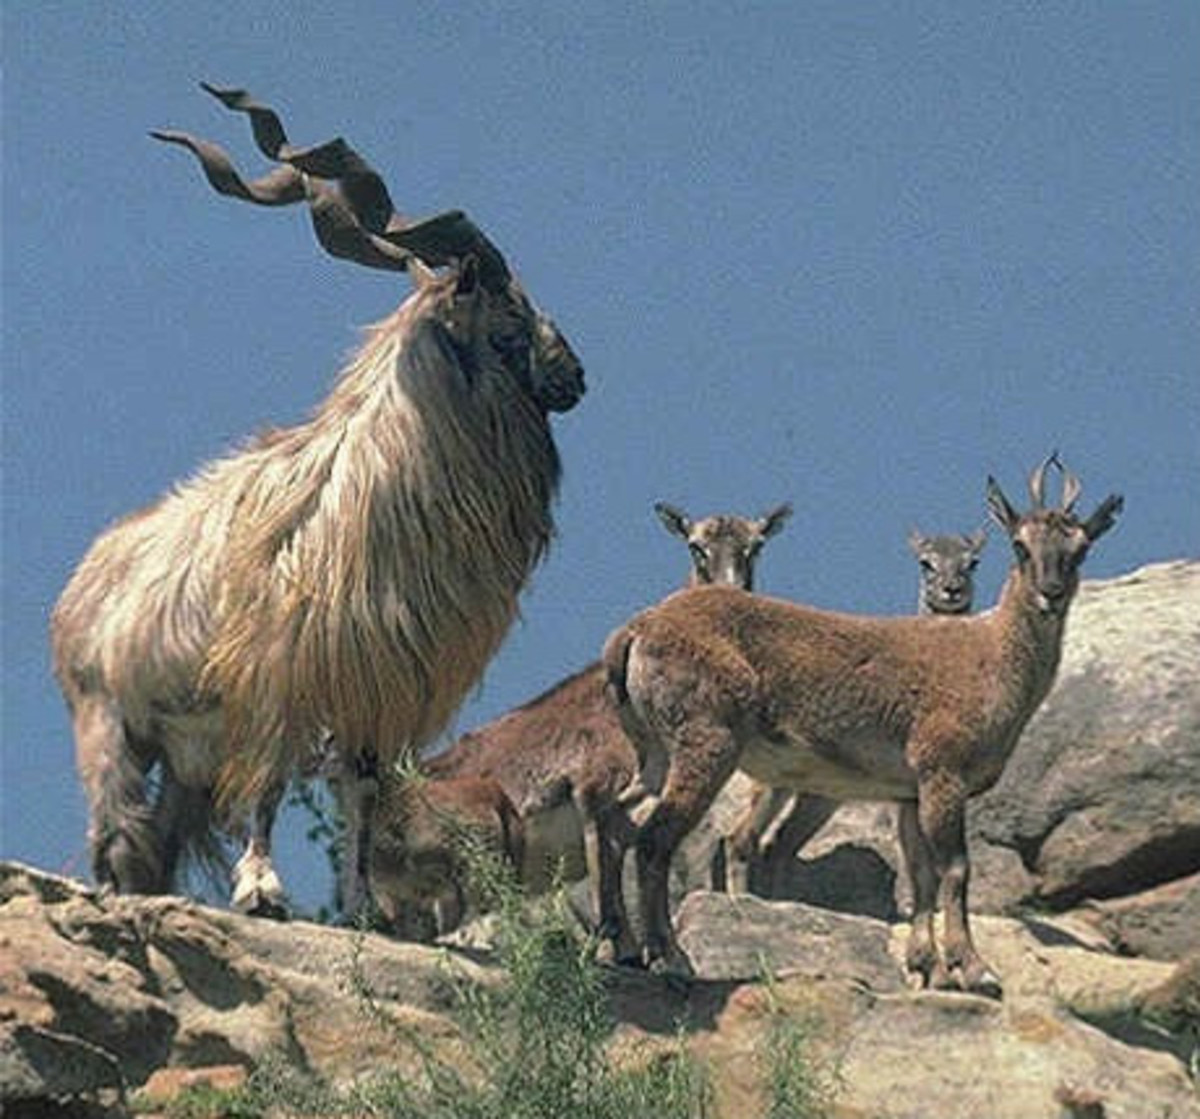 Markhor is the national animal of Pakistan, but K2 and us are not likely to cross paths with these beautiful animals.